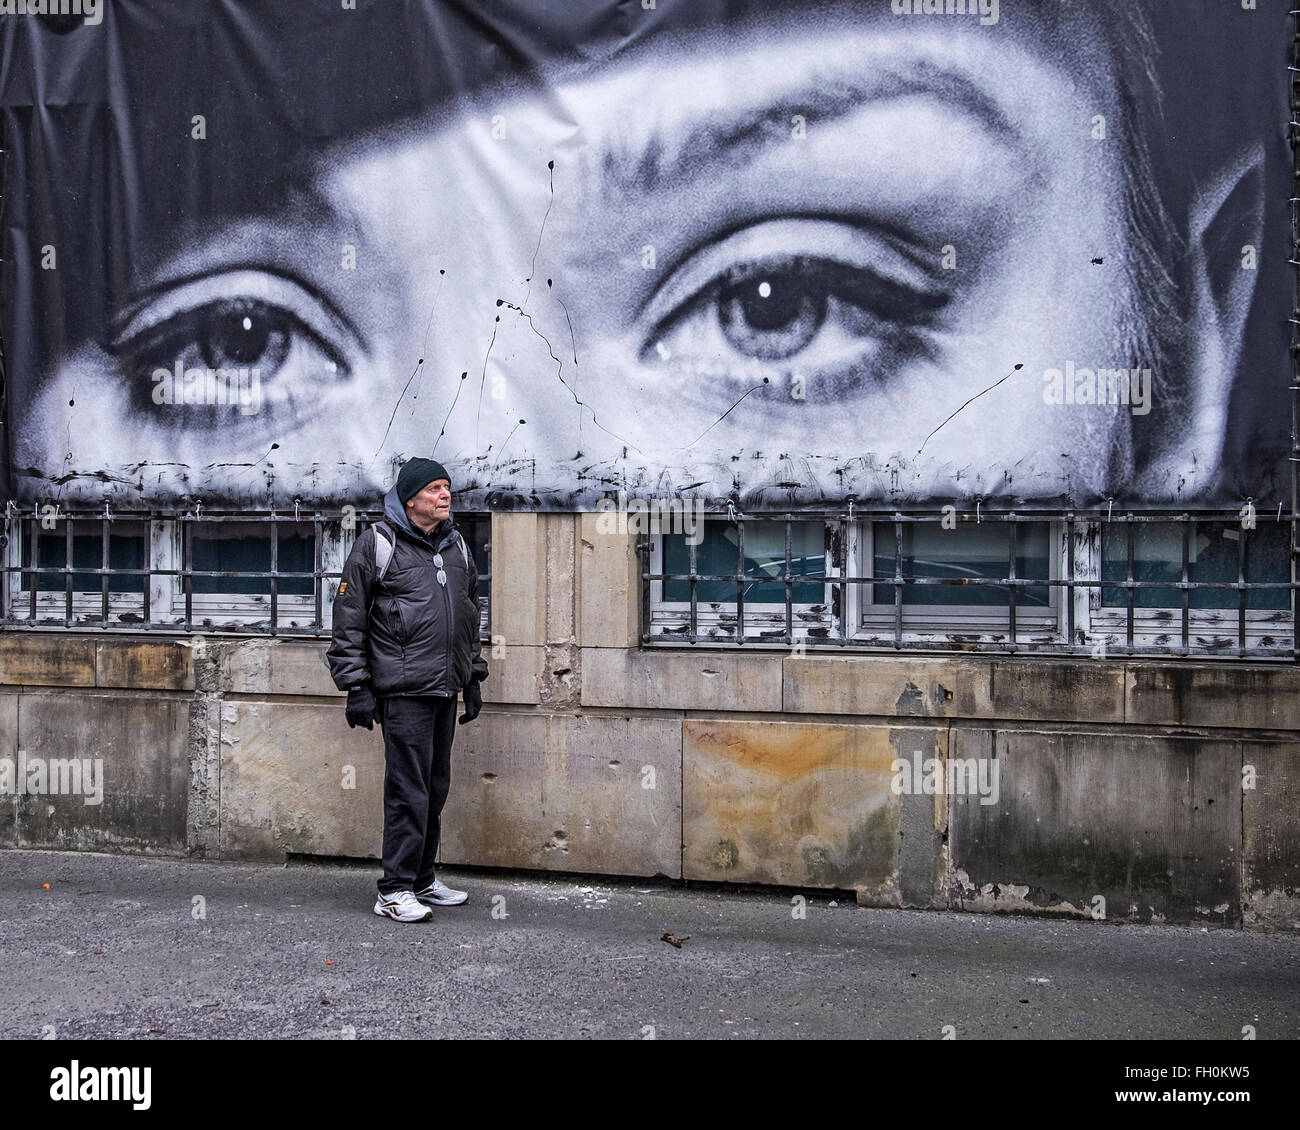 Elderly man standing outside Berlin Rath Factory exterior with B & W photograph of giant eyes, Mitte Berlin - Stock Image